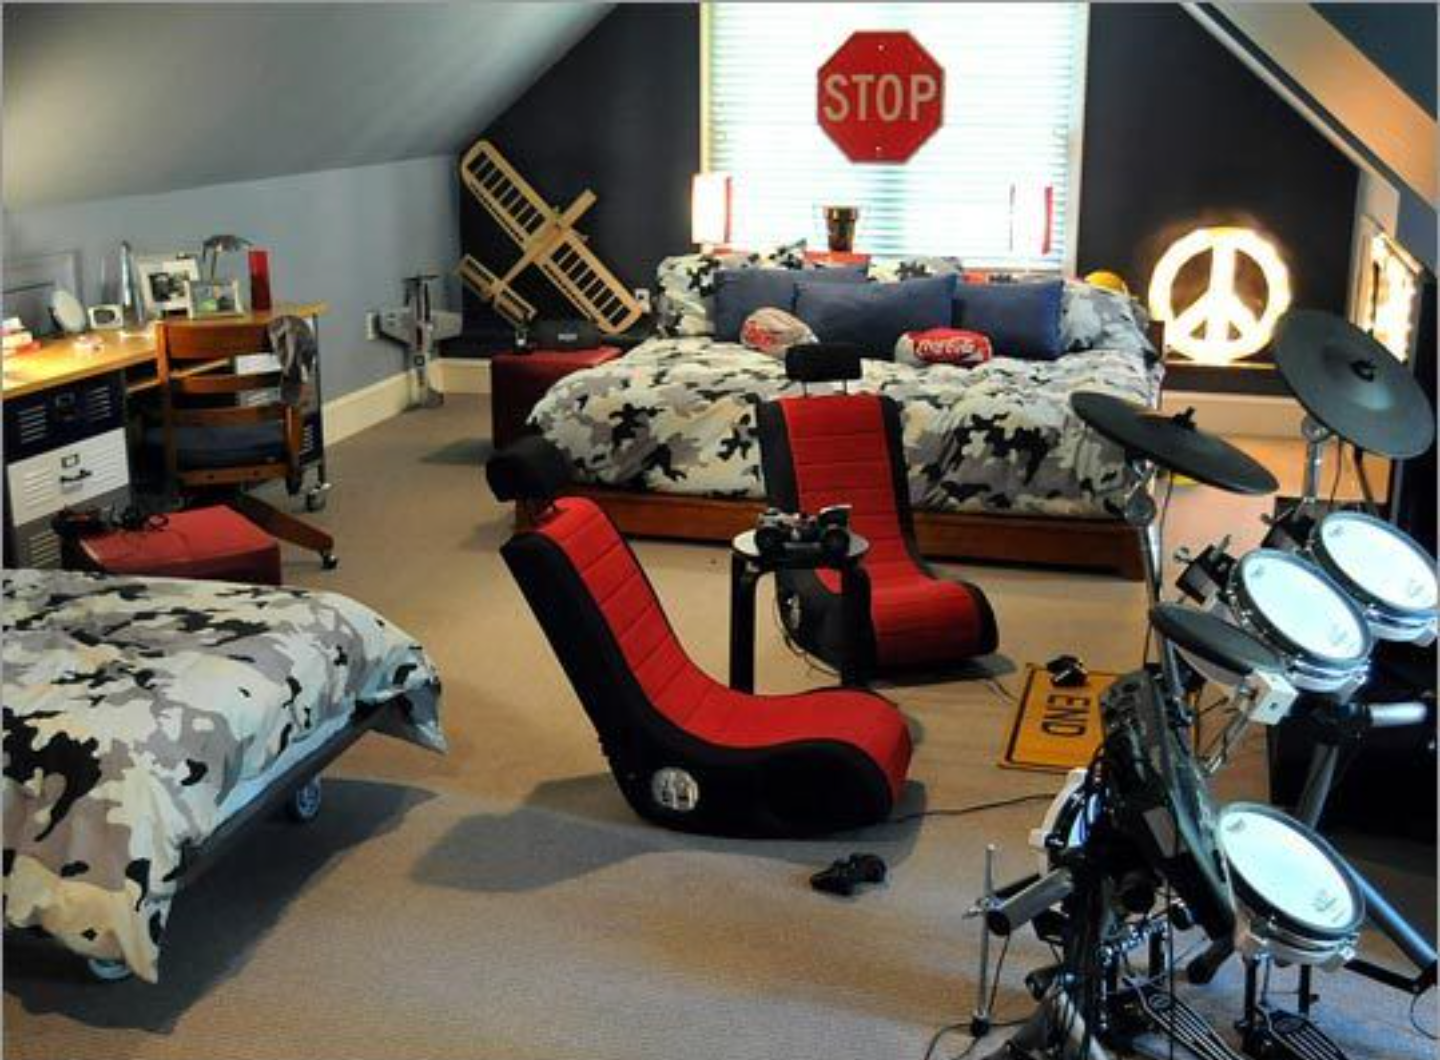 Shared boys bedroom designs - This Is The Perfect Shared Bedroom For Preteen Brothers Teens Judging By The Larger